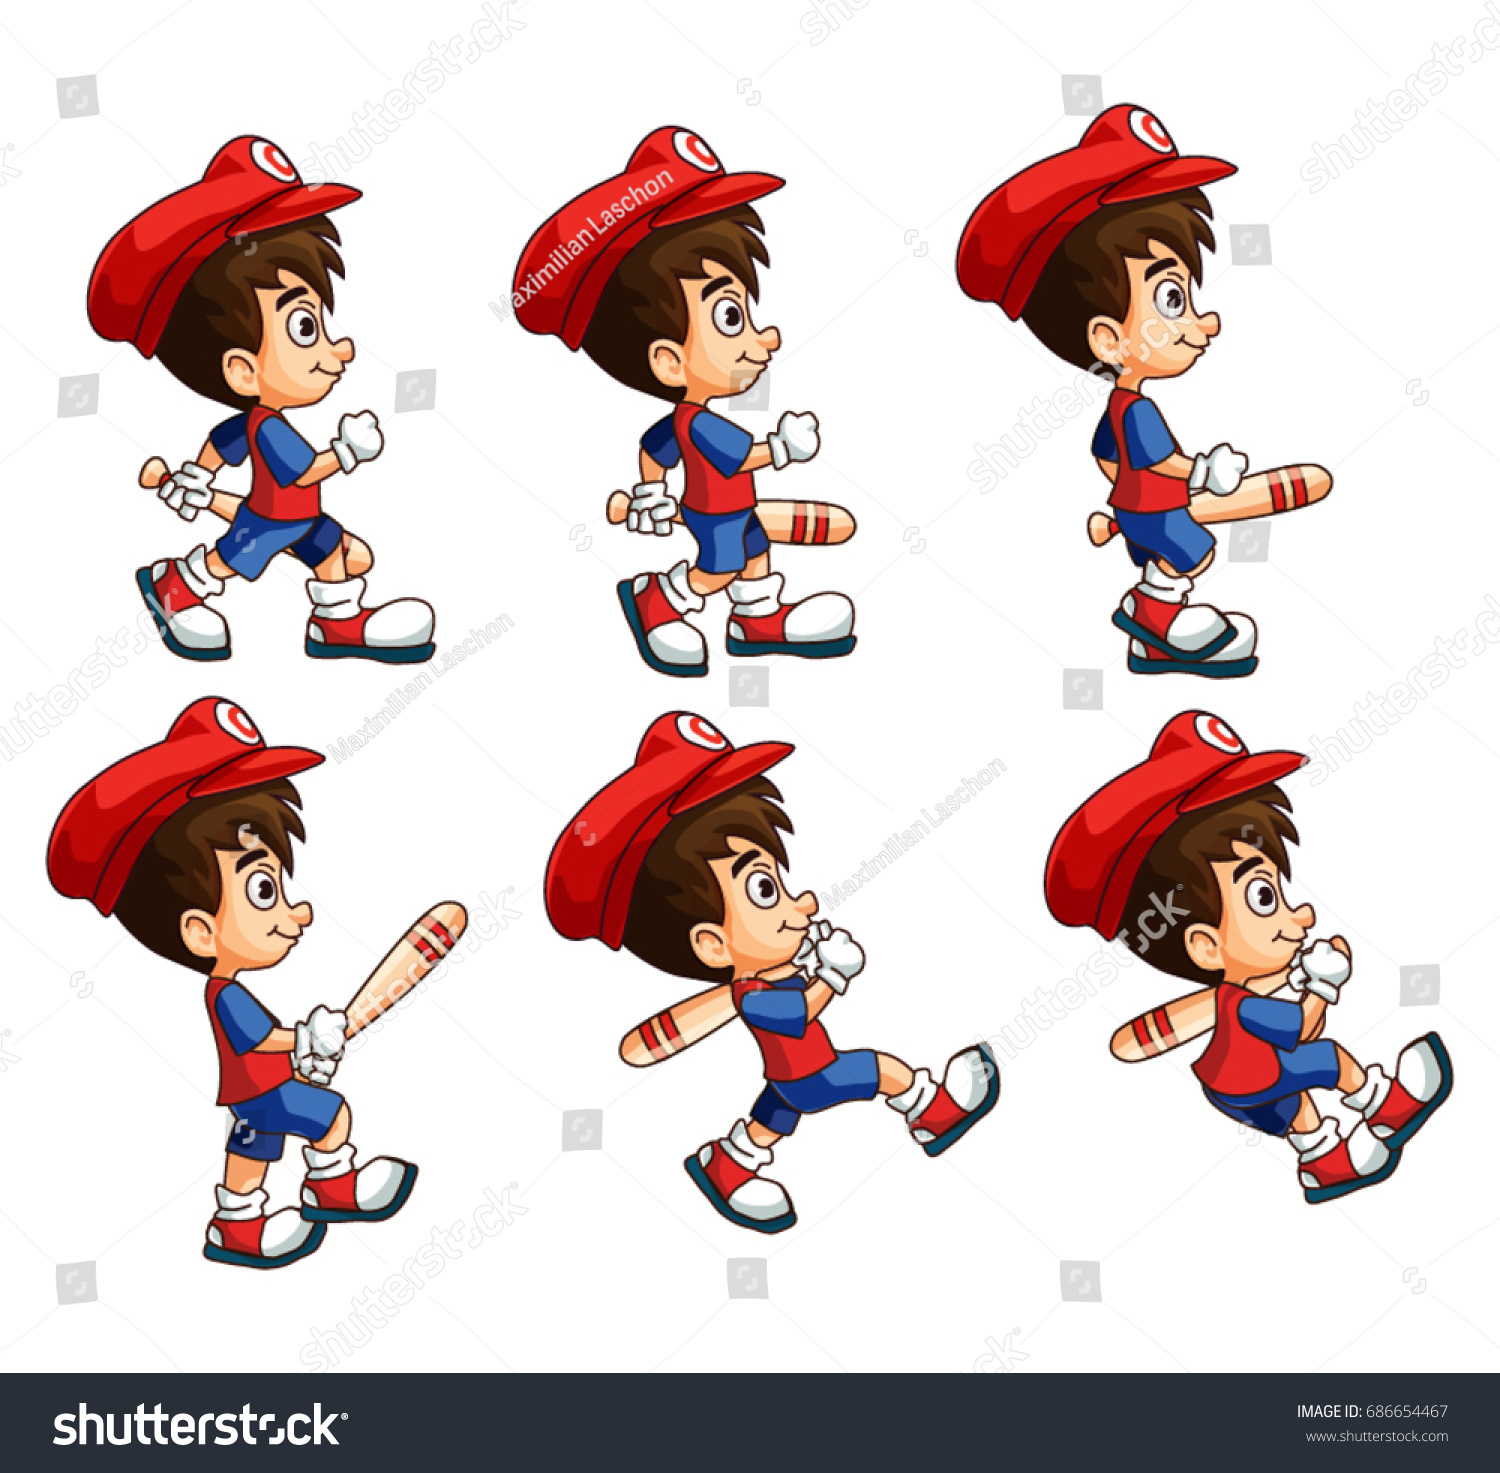 Mobile Game 2 D Assets Platformer Character Stock Vector (Royalty ...